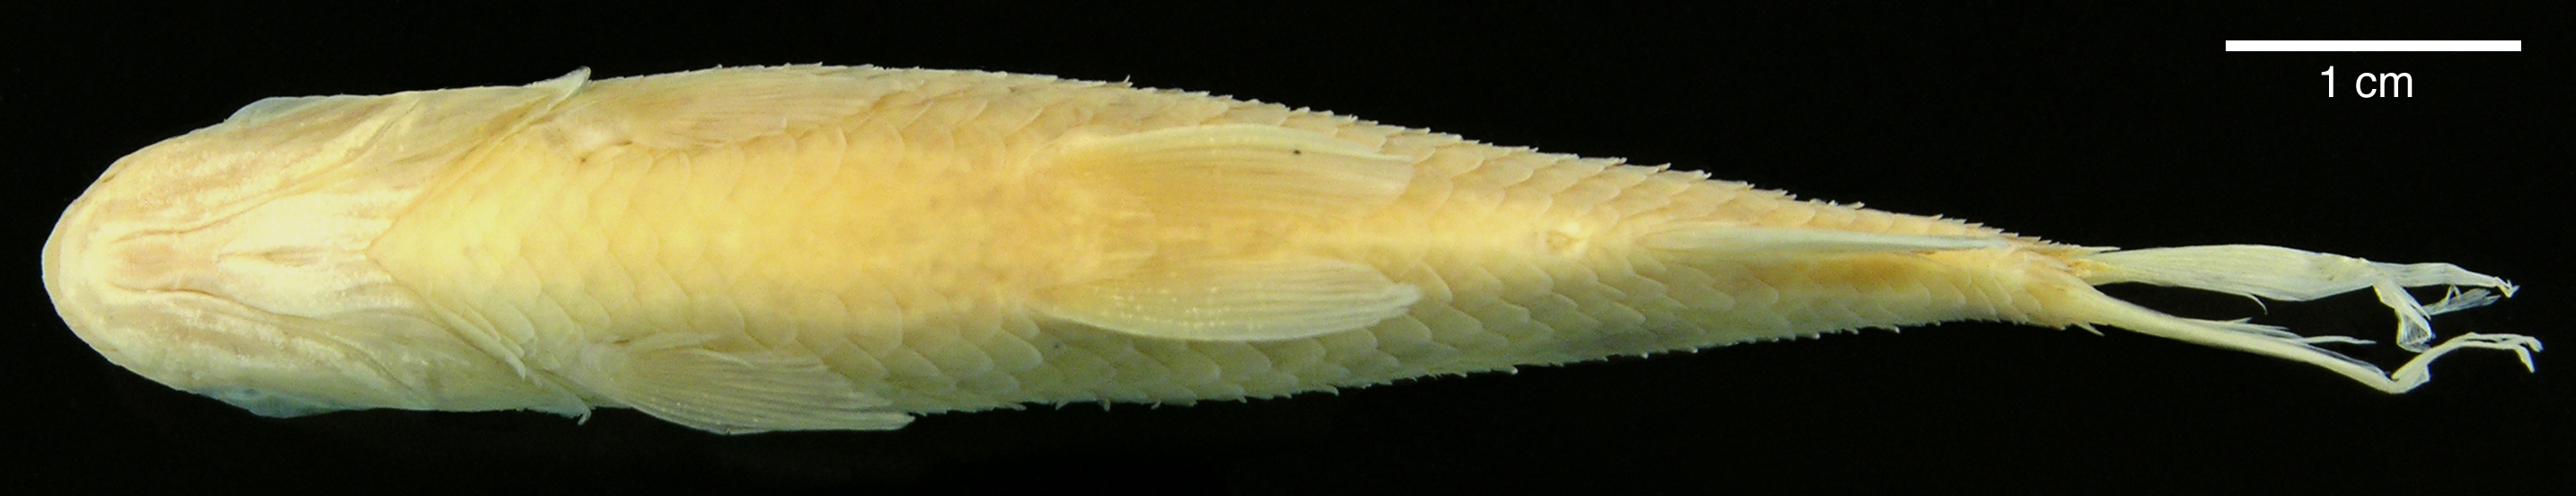 Paratype of <em>Leporinus boehlkei</em>, IAvH-P-10562_Ventral, 70.2 mm SL (scale bar = 1 cm). Photograph by M. H. Sabaj Pérez